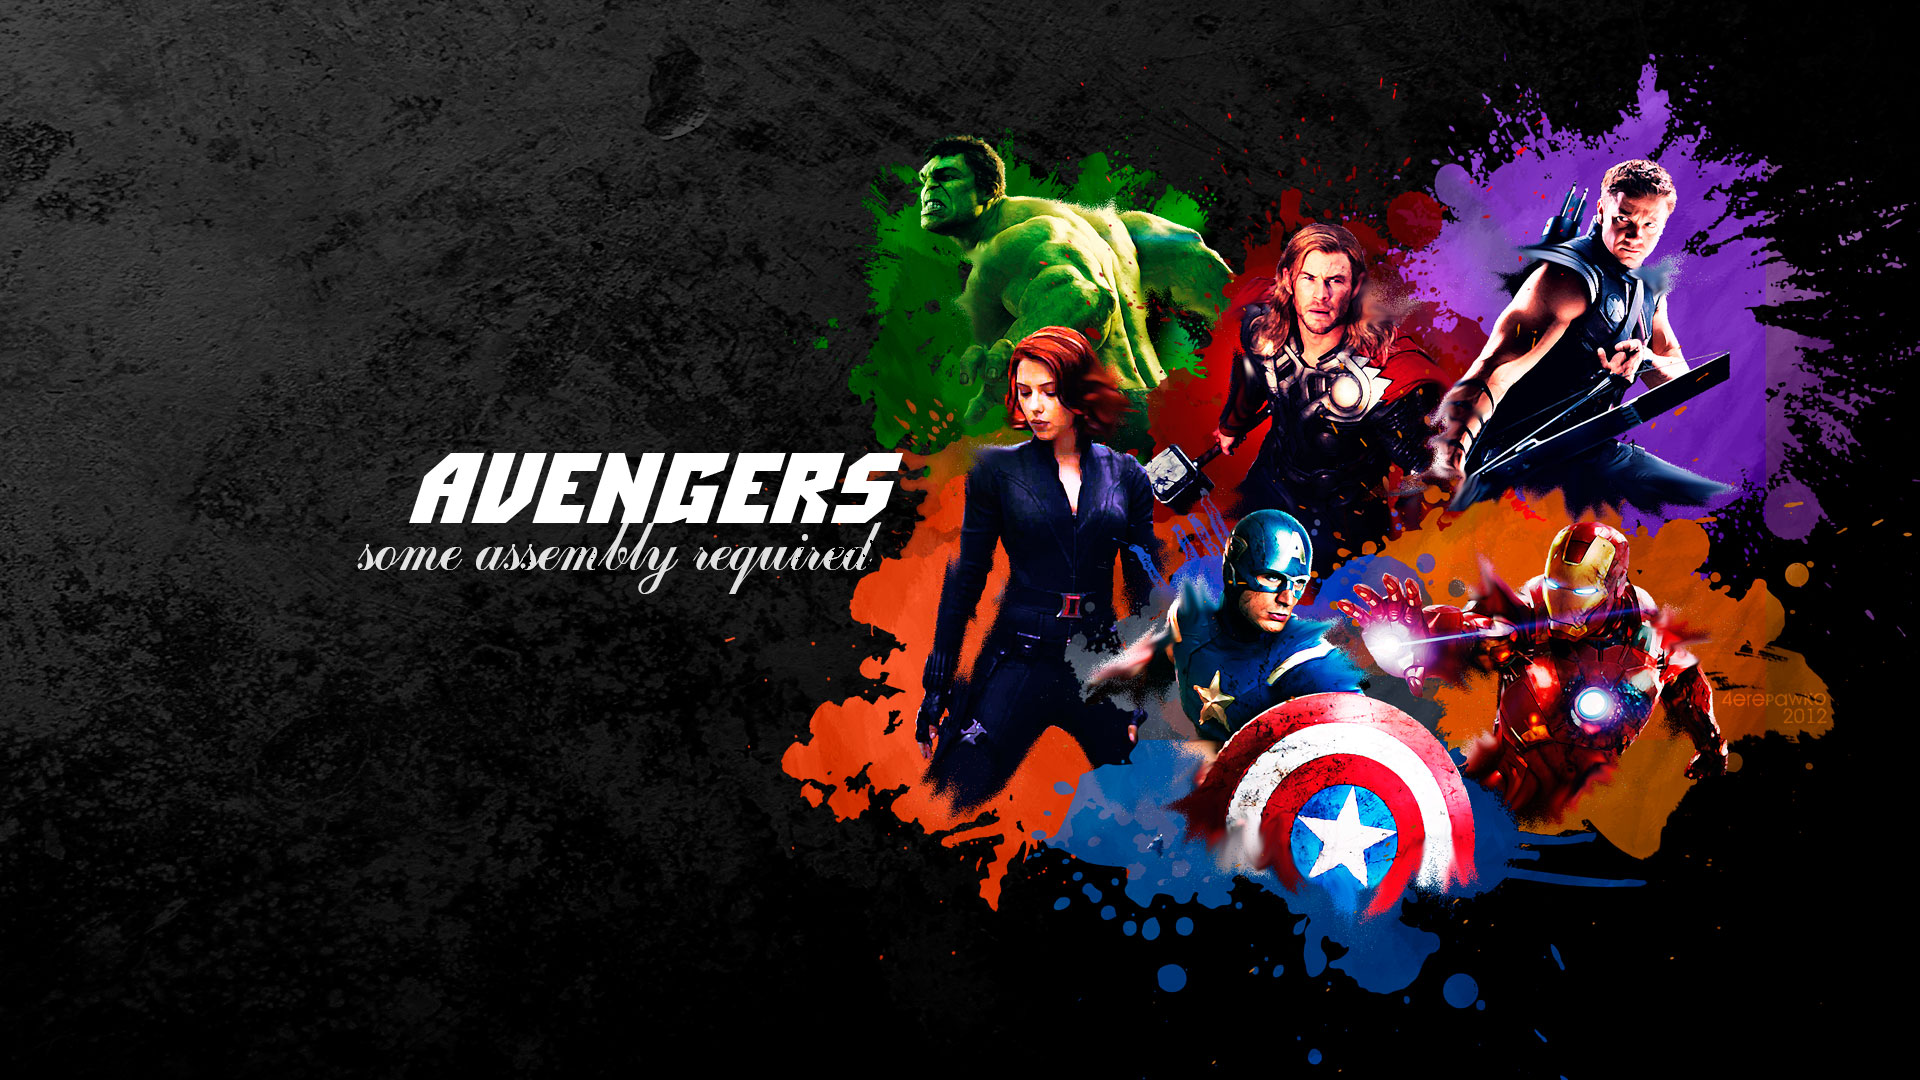 Download Avengers Animated Wallpaper Gallery